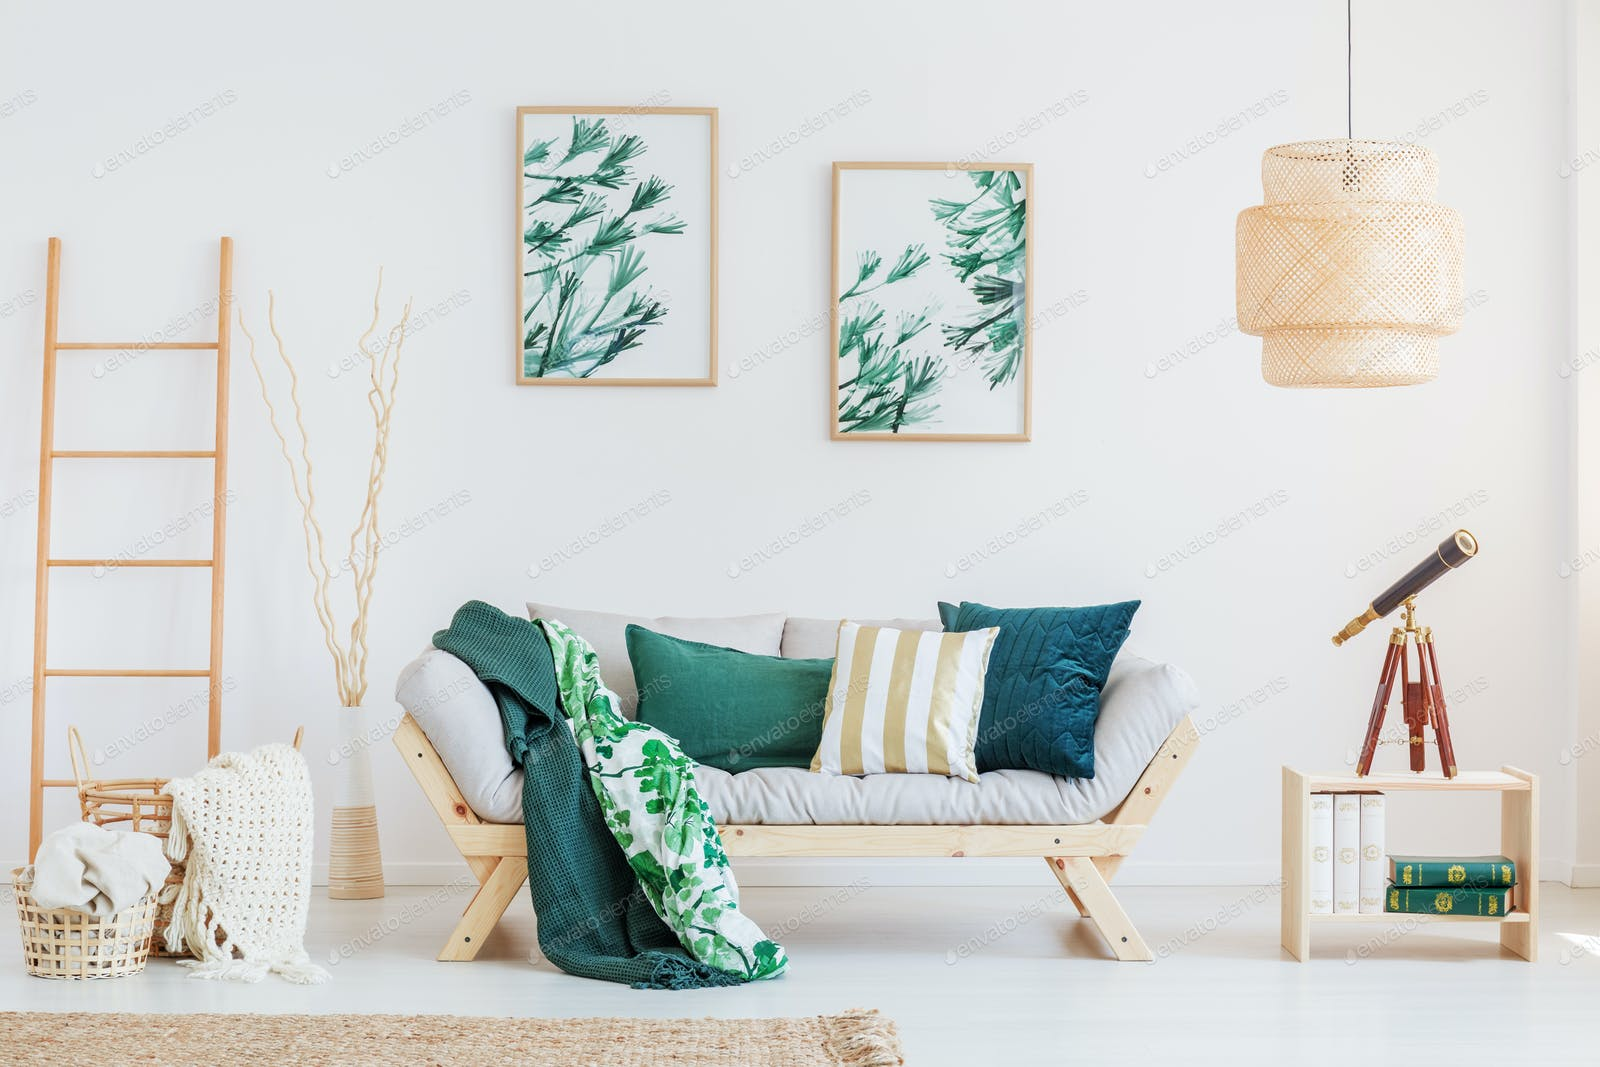 Room with dark green accents photo by bialasiewicz on Envato Elements